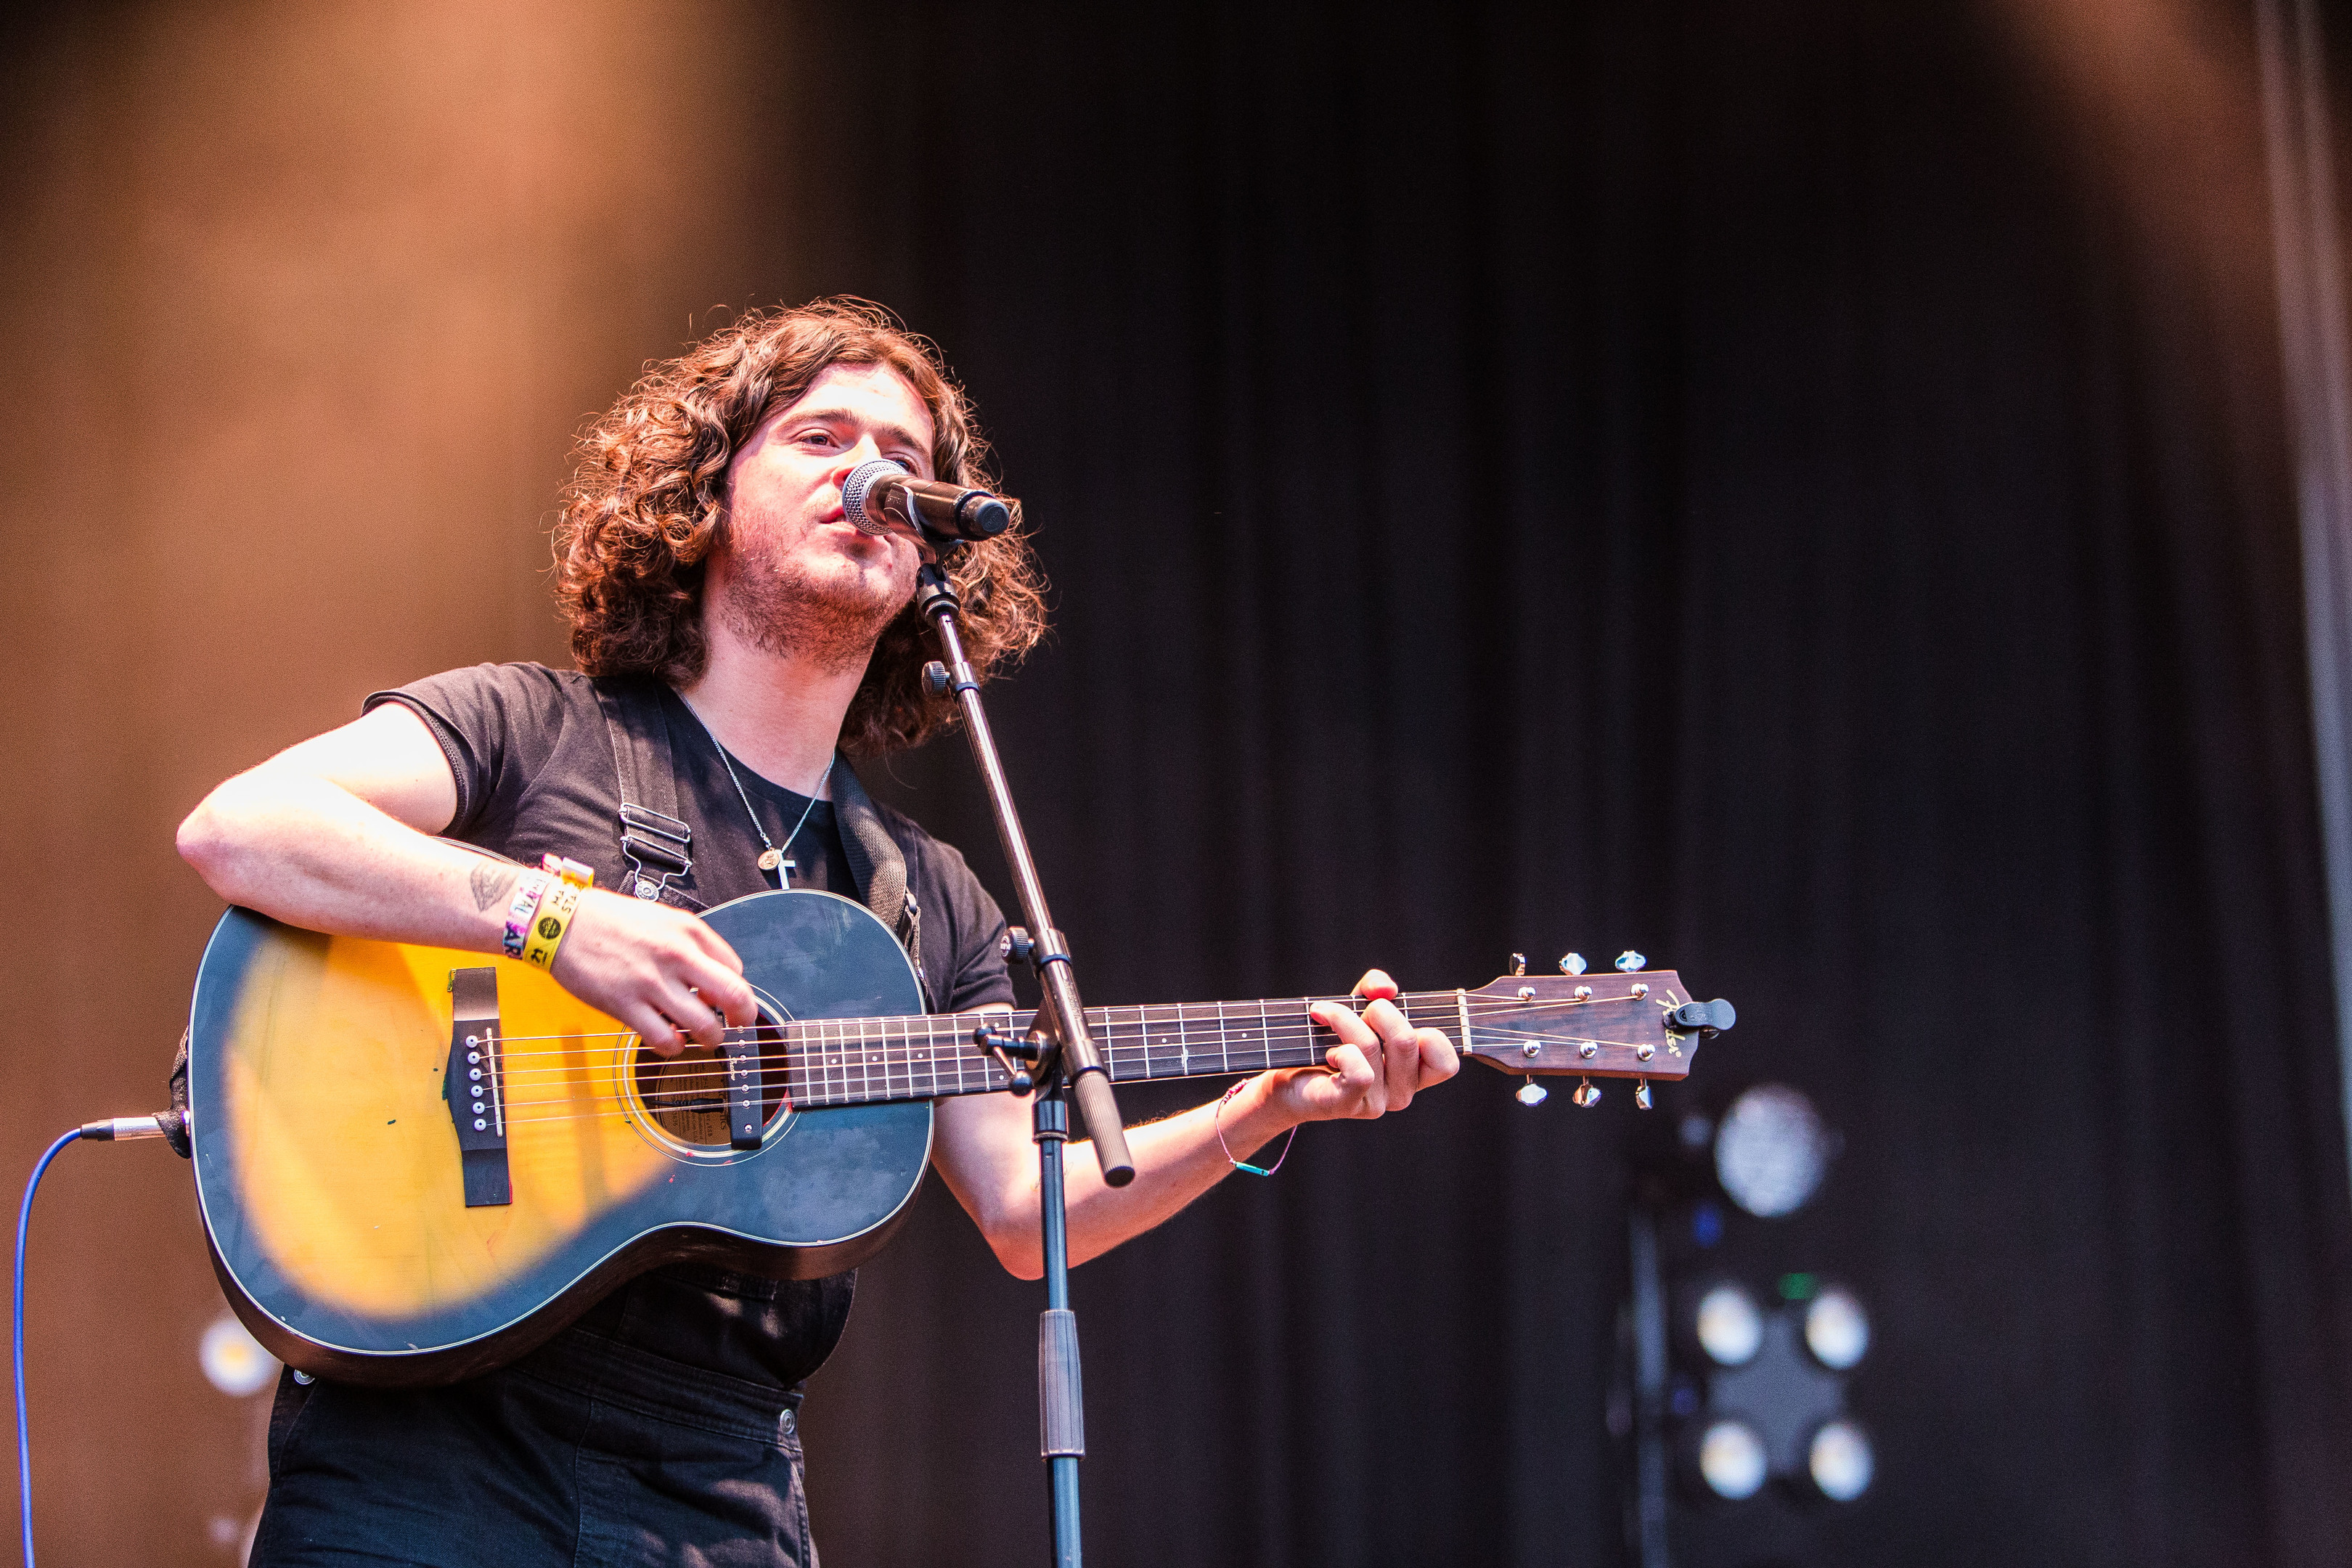 Kyle Falconer on stage at Carnival 56.